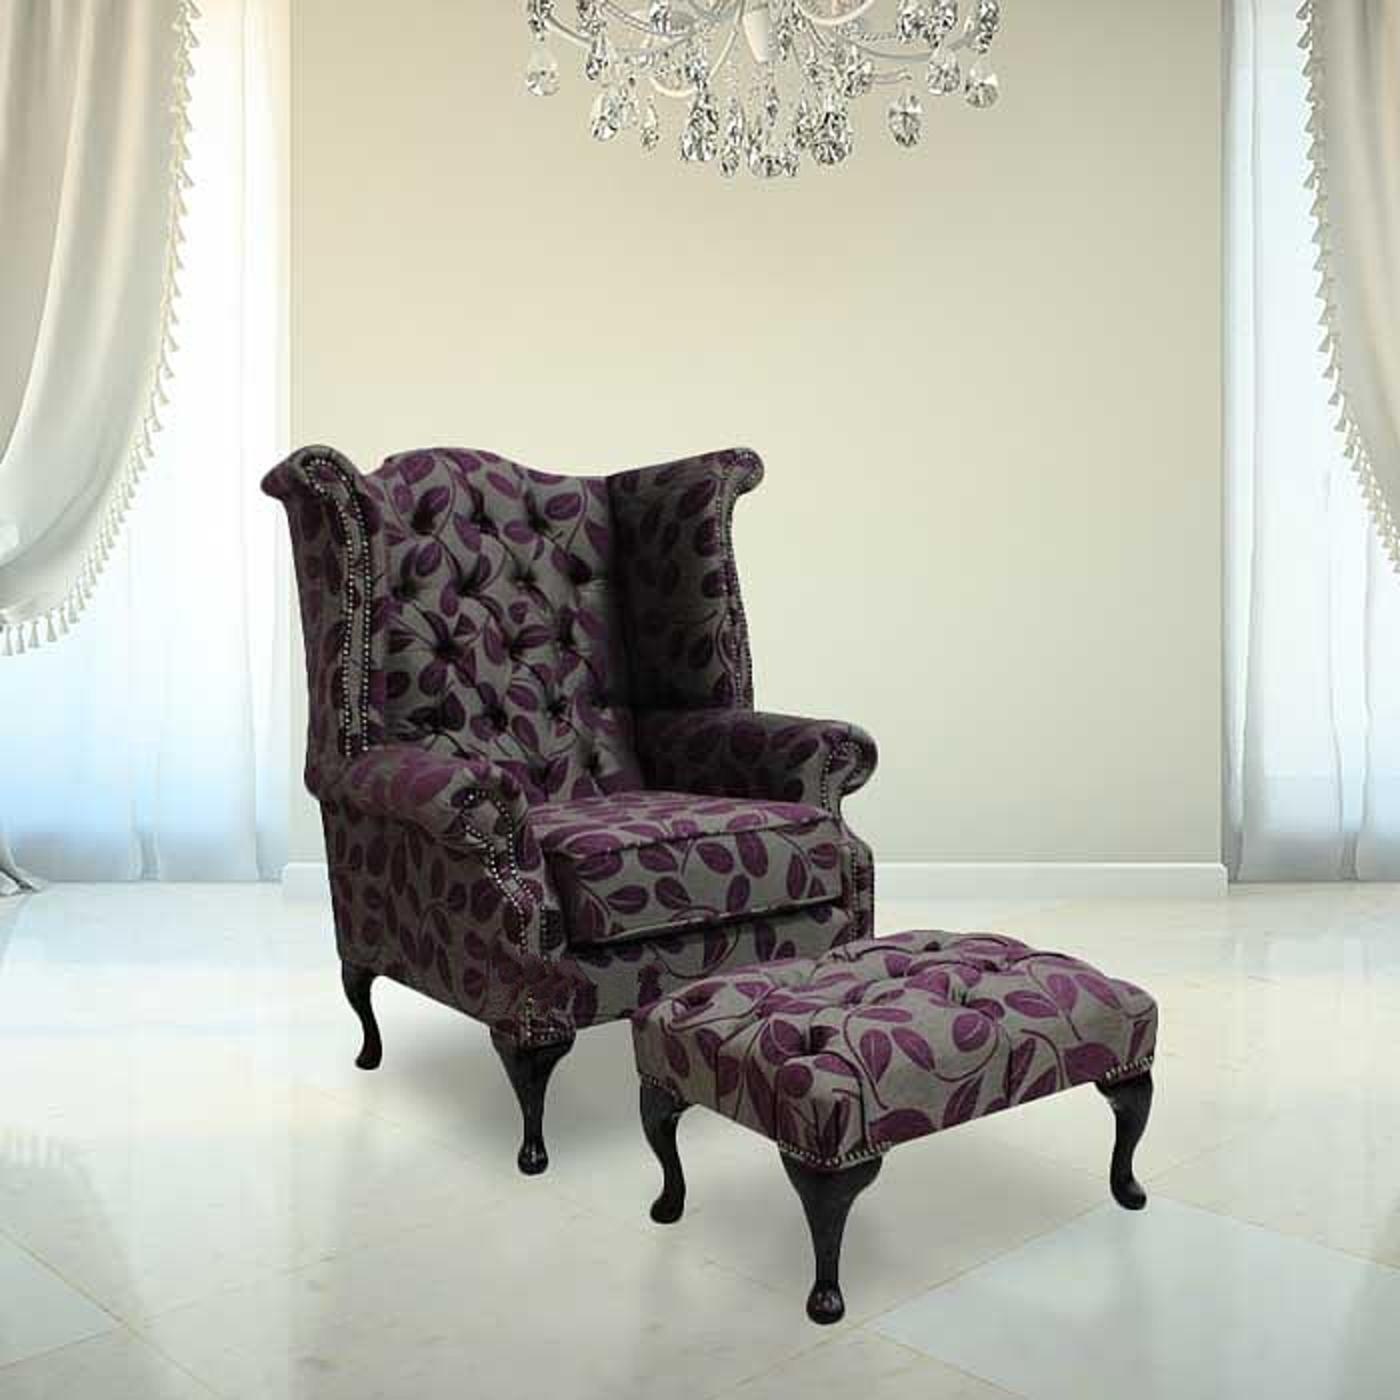 Chesterfield Fabric Queen Anne High Back Wing Chair + Footstool Orchard  Leaf Aubergine